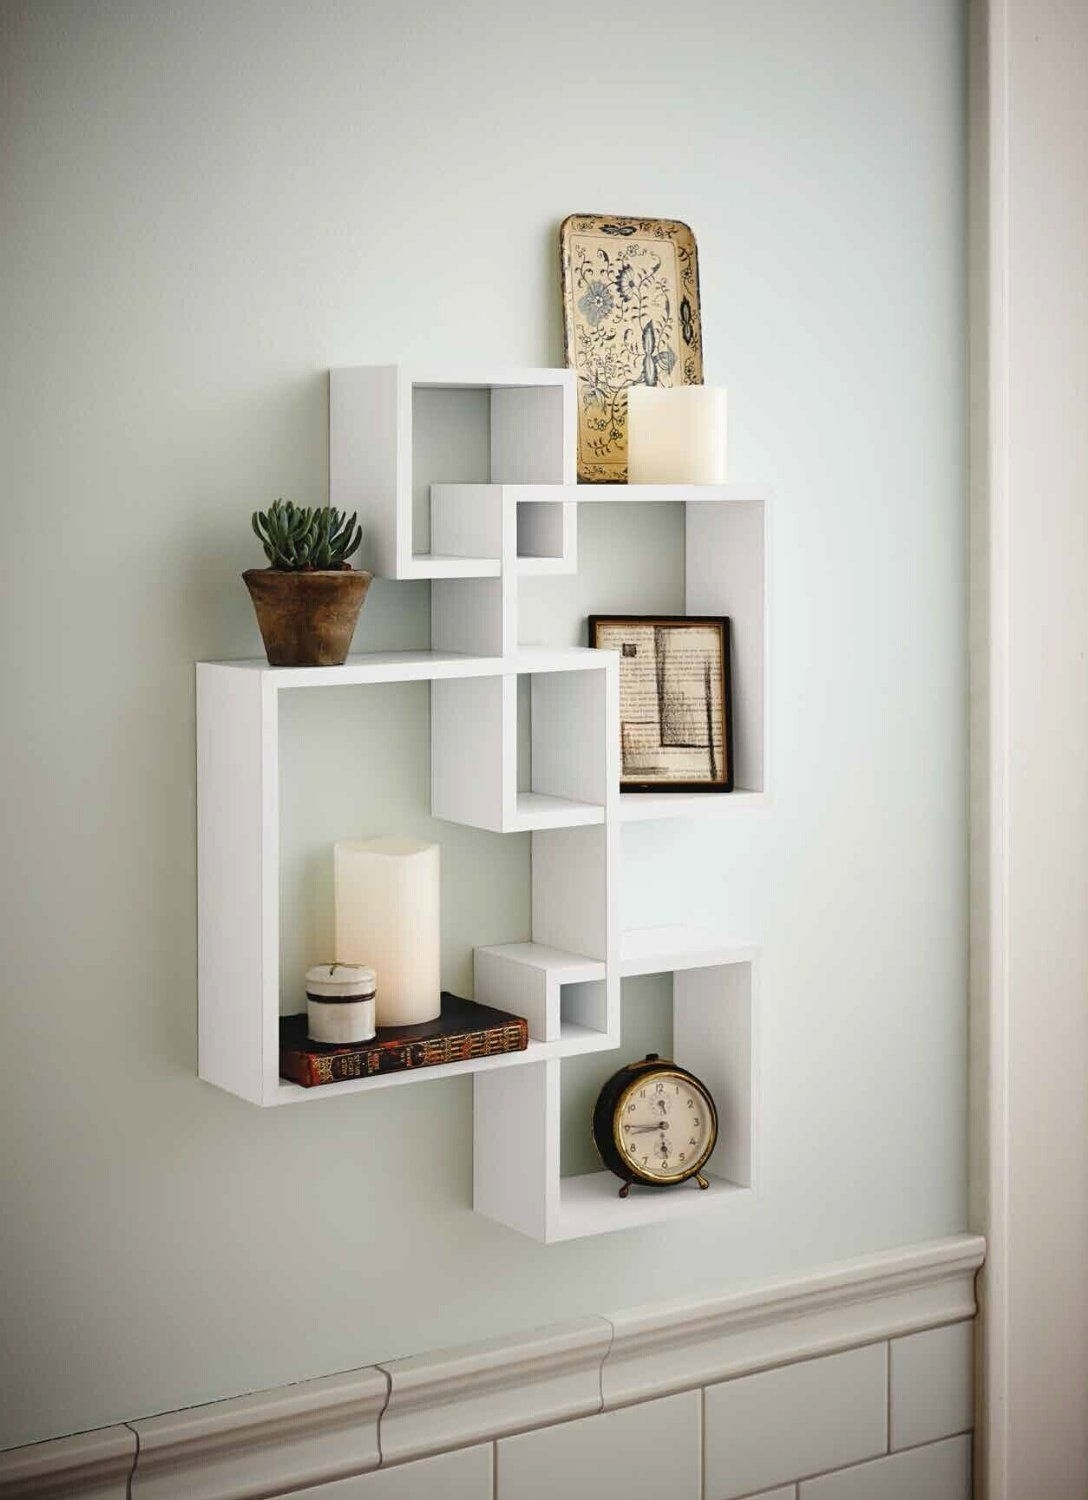 Amazon – Generic Intersecting Squares Wall Shelf – Decorative In Recent Amazon Wall Accents (View 1 of 15)